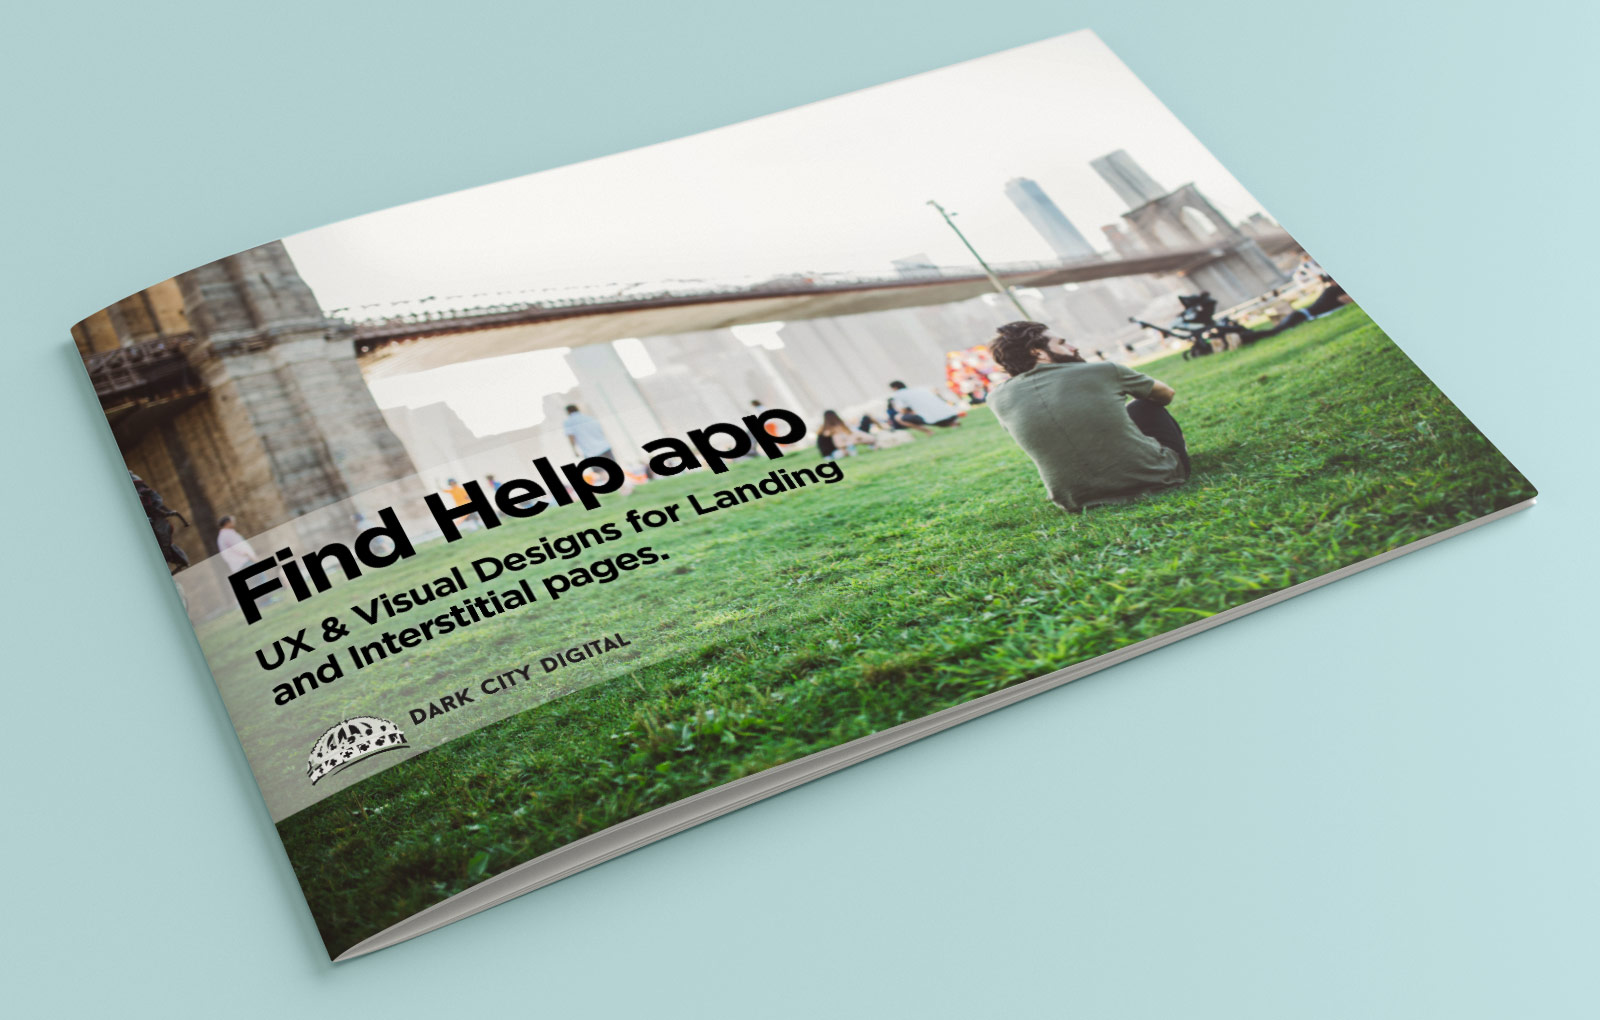 Catholic Charities Find Help Campaign Visual Strategy Cover